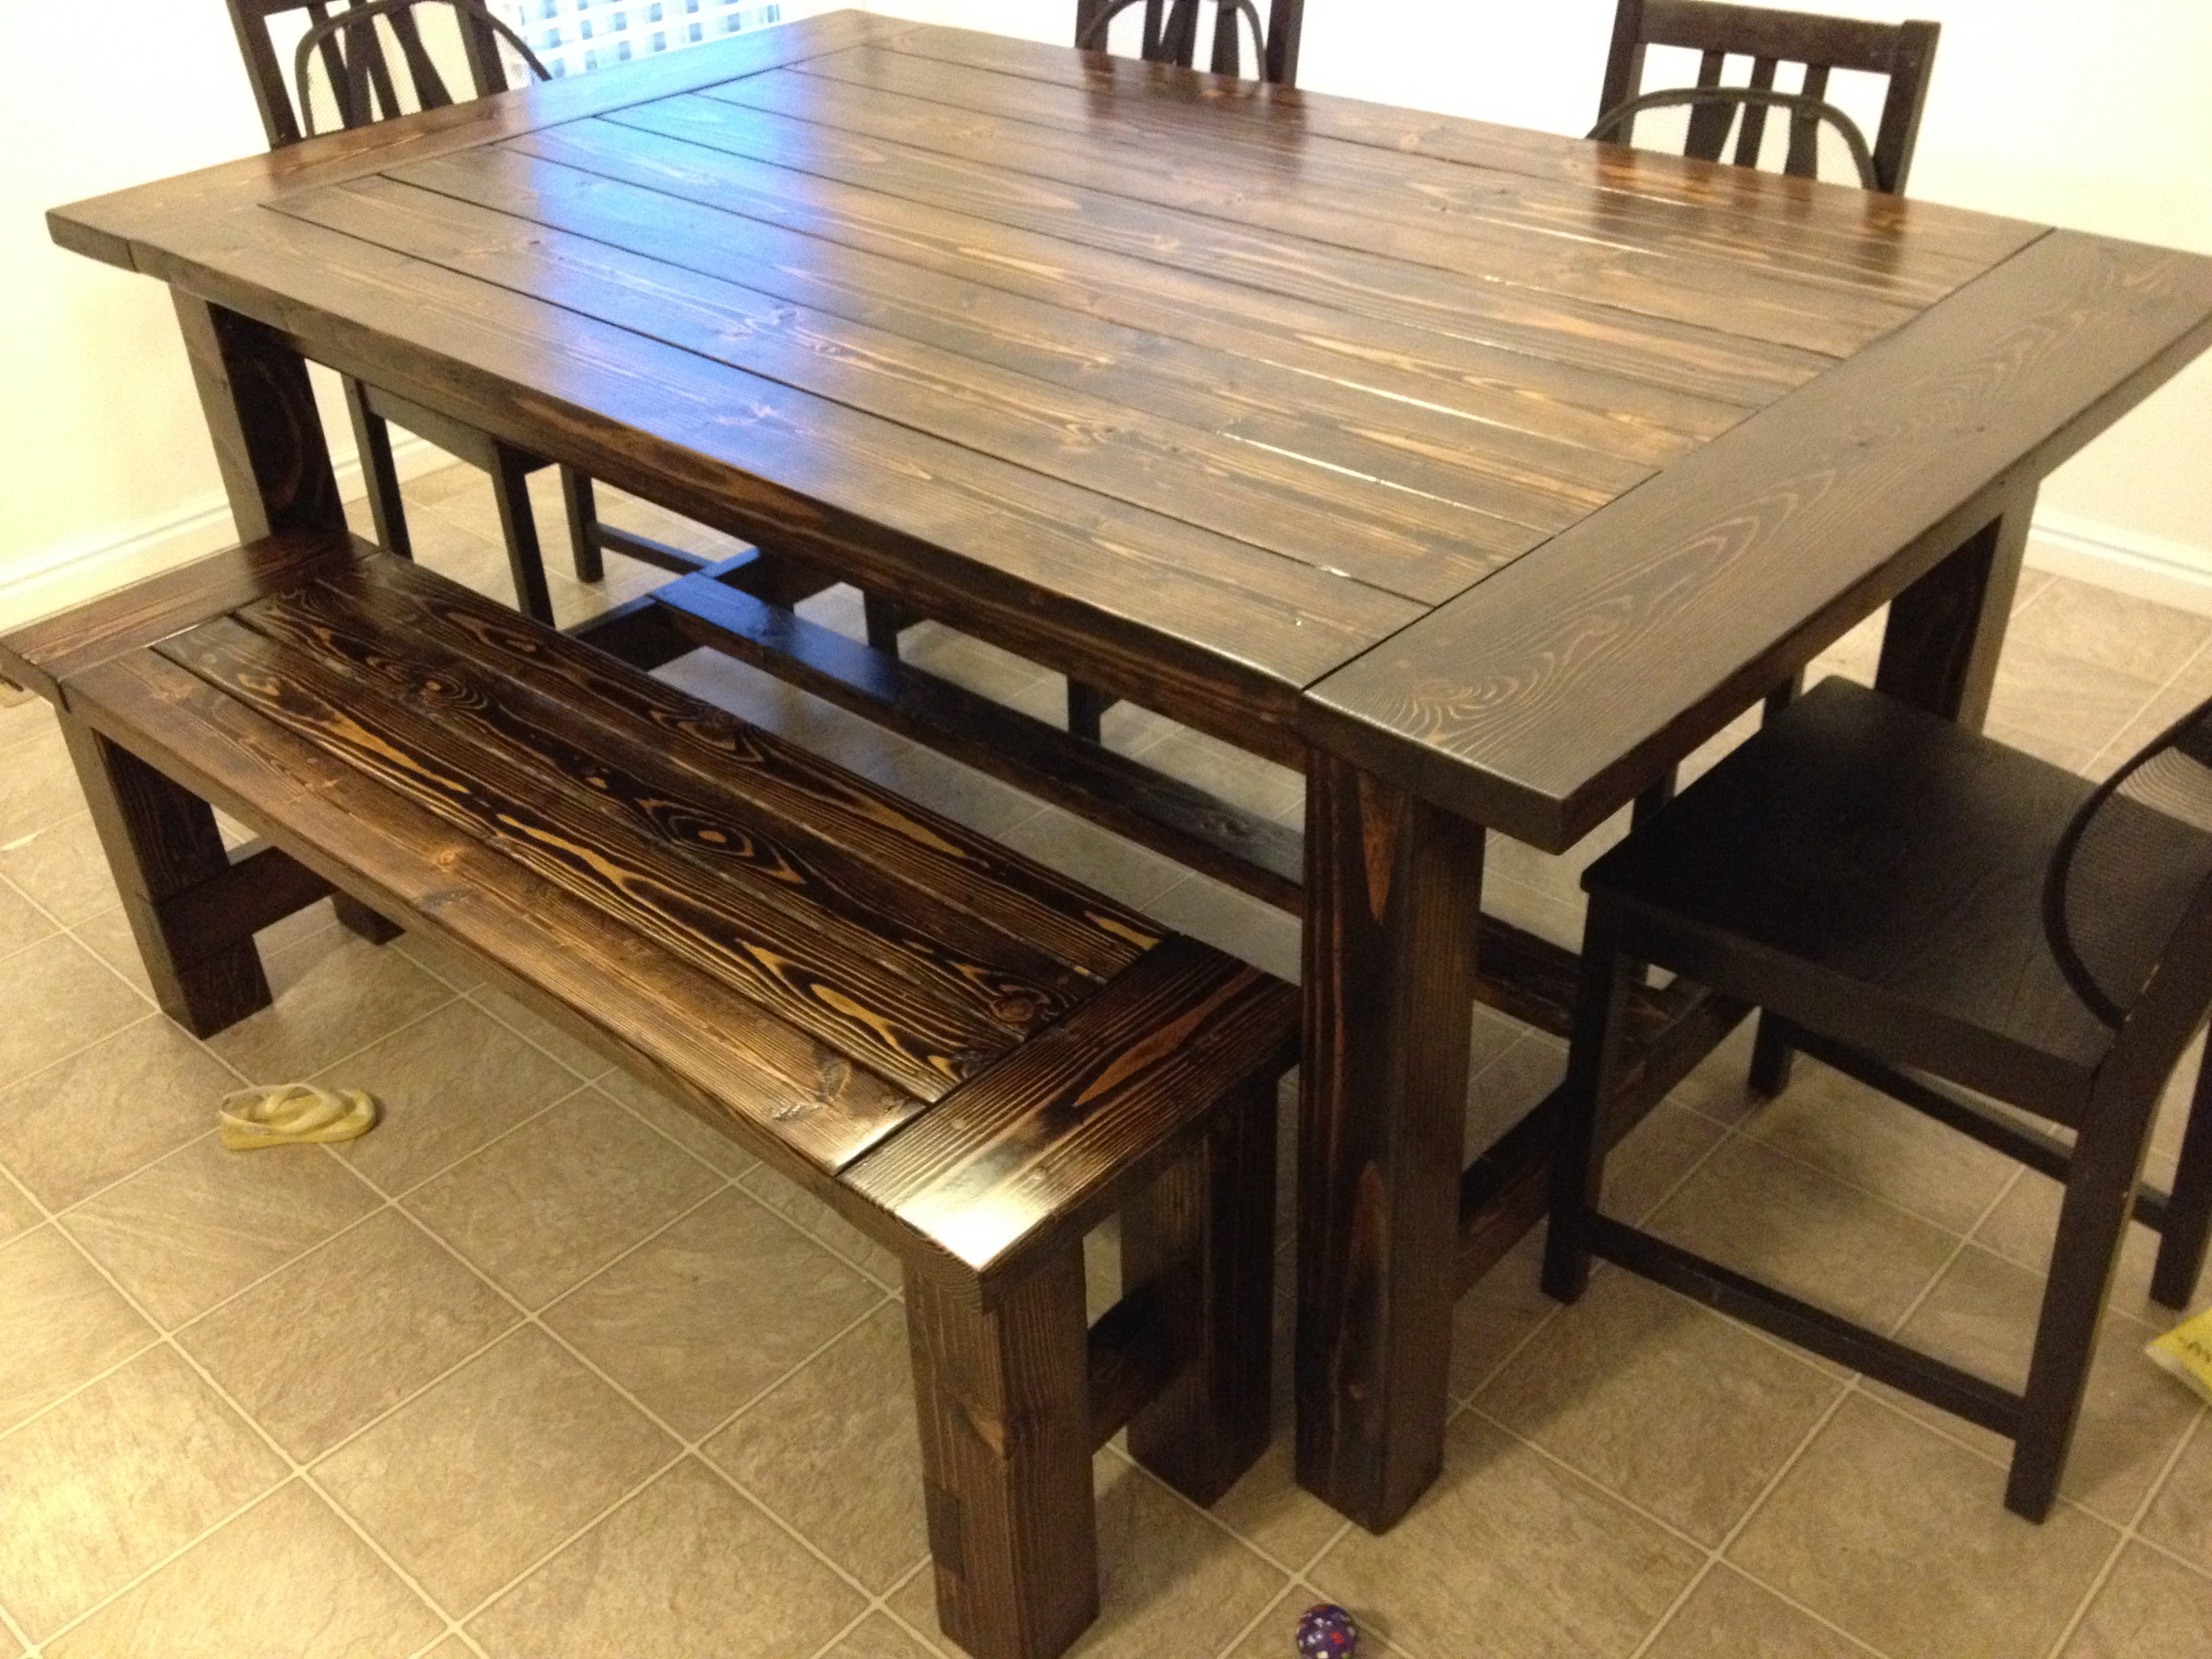 ana white farmhouse table and bench diy projects